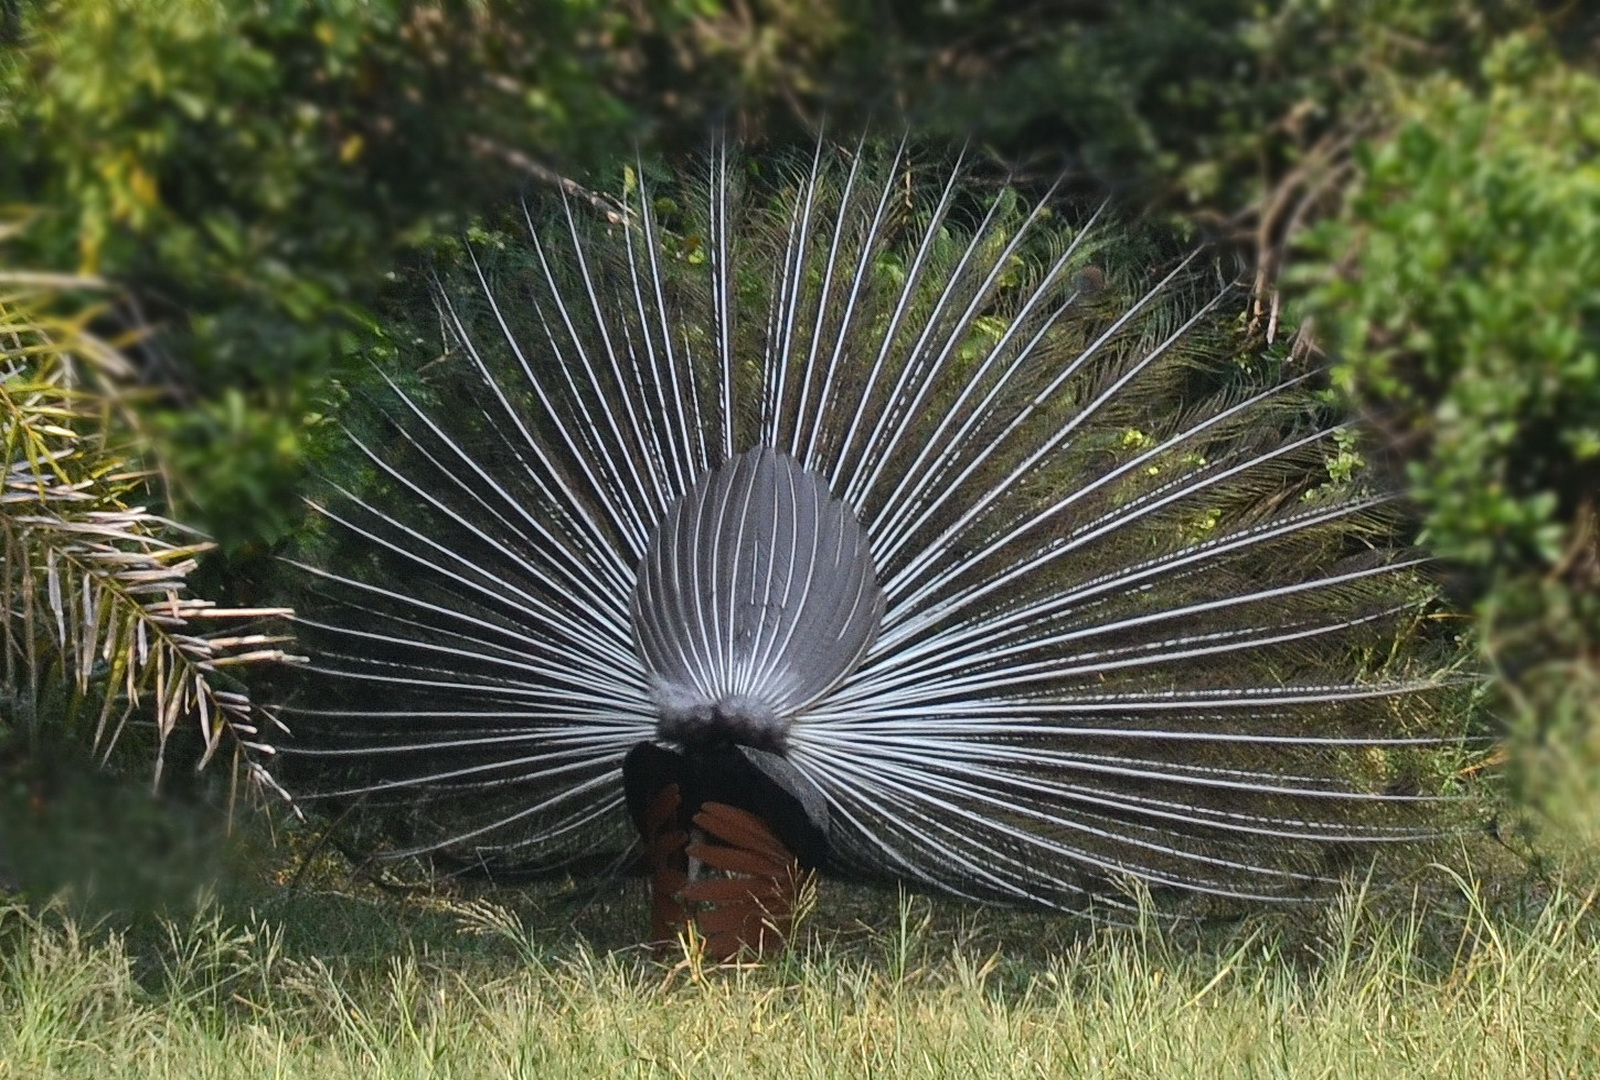 Sri Lanka, Peafowl in display mode